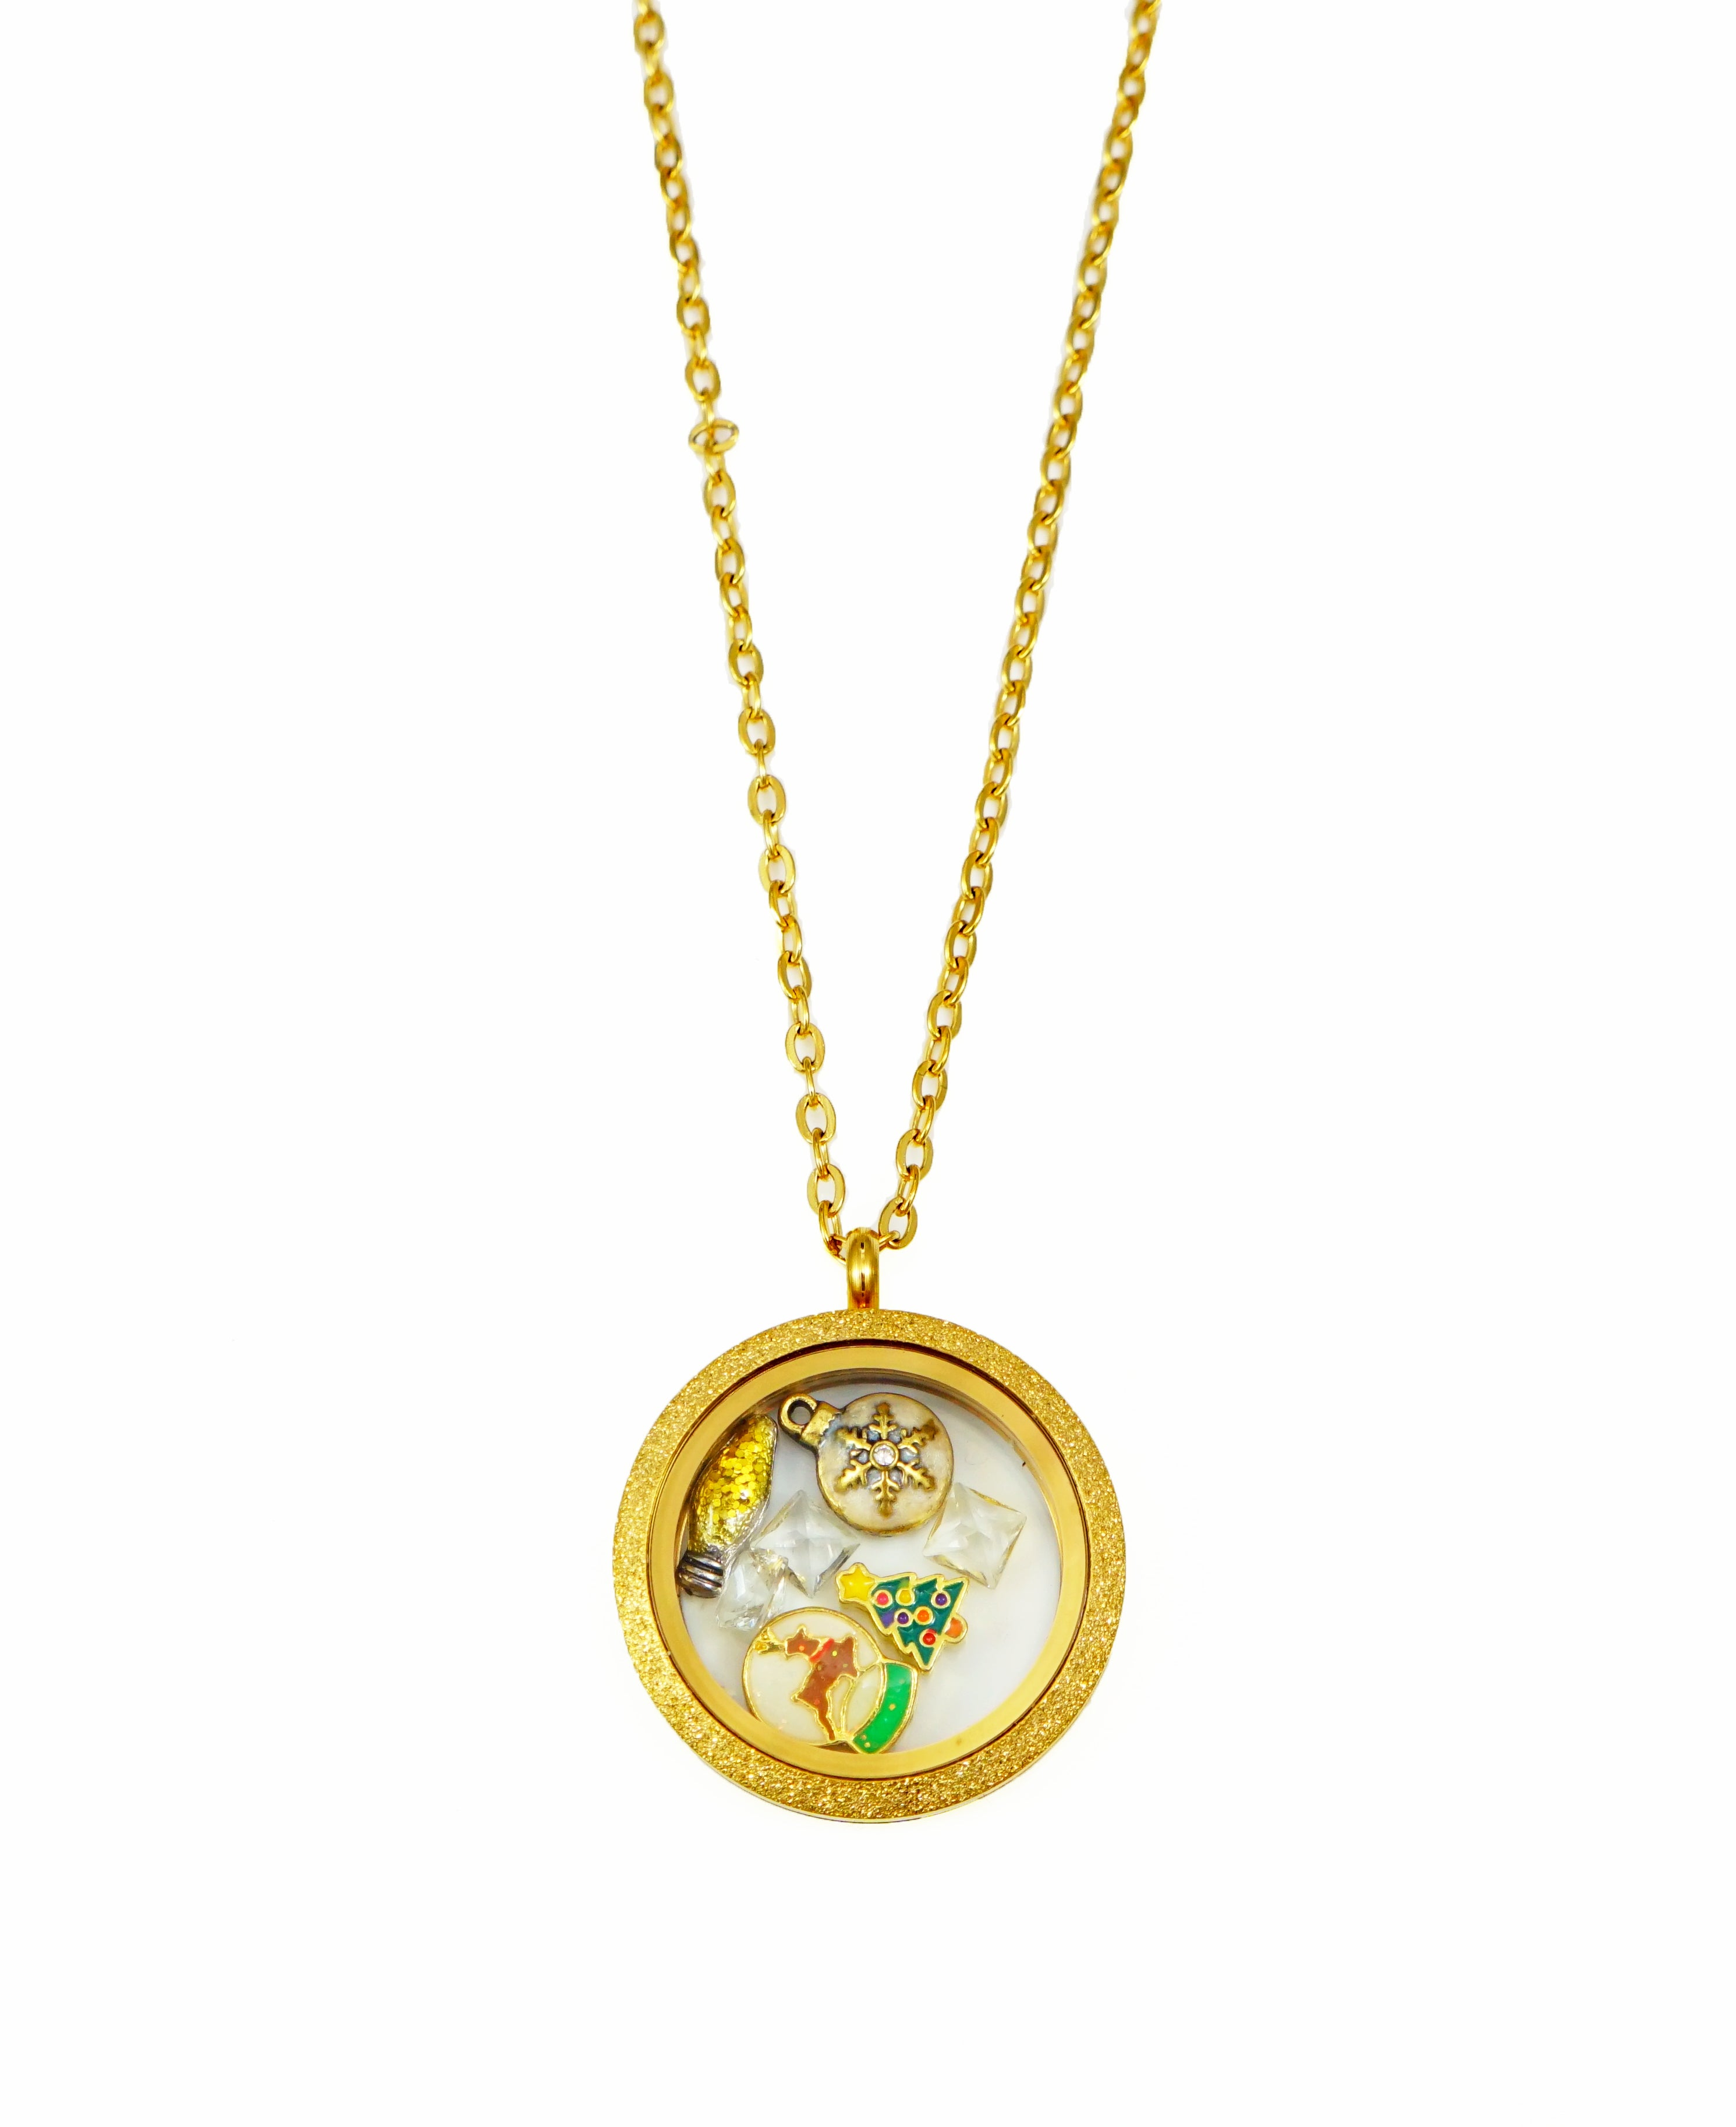 STAINLESS STEEL FLOATING LOCKET NECKLACE WITH 6 CHARMS AND 1 PLATE (GLITTER)